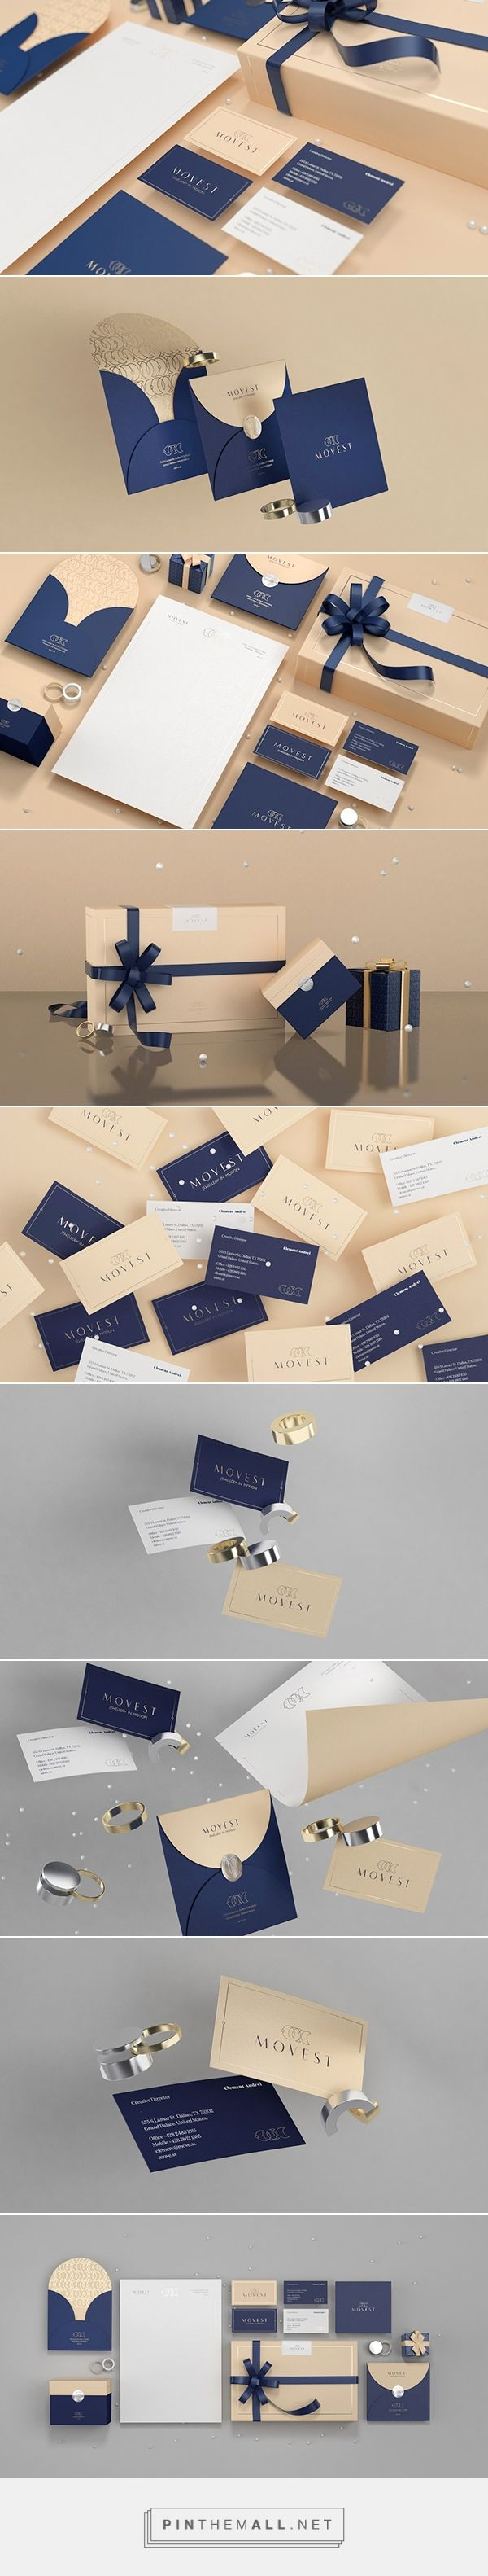 Movest - Jewelry in motion on Behance - created via http://pinthemall.net